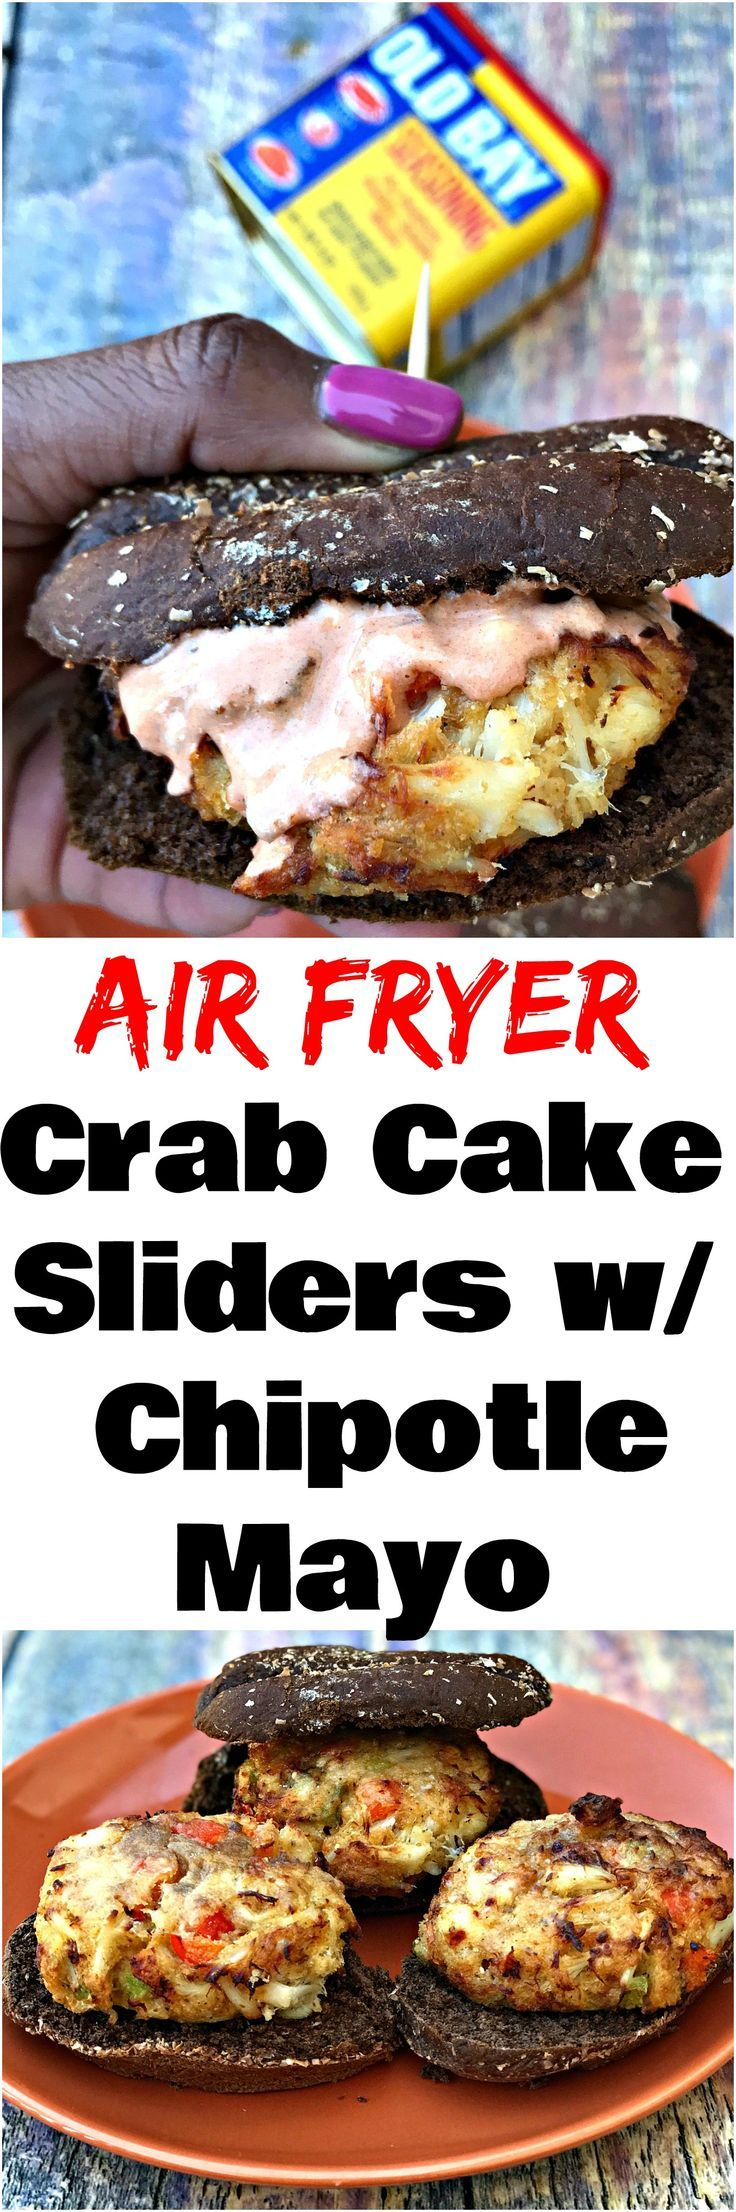 Air fryer fifteen minute old bay crab cake sliders is a